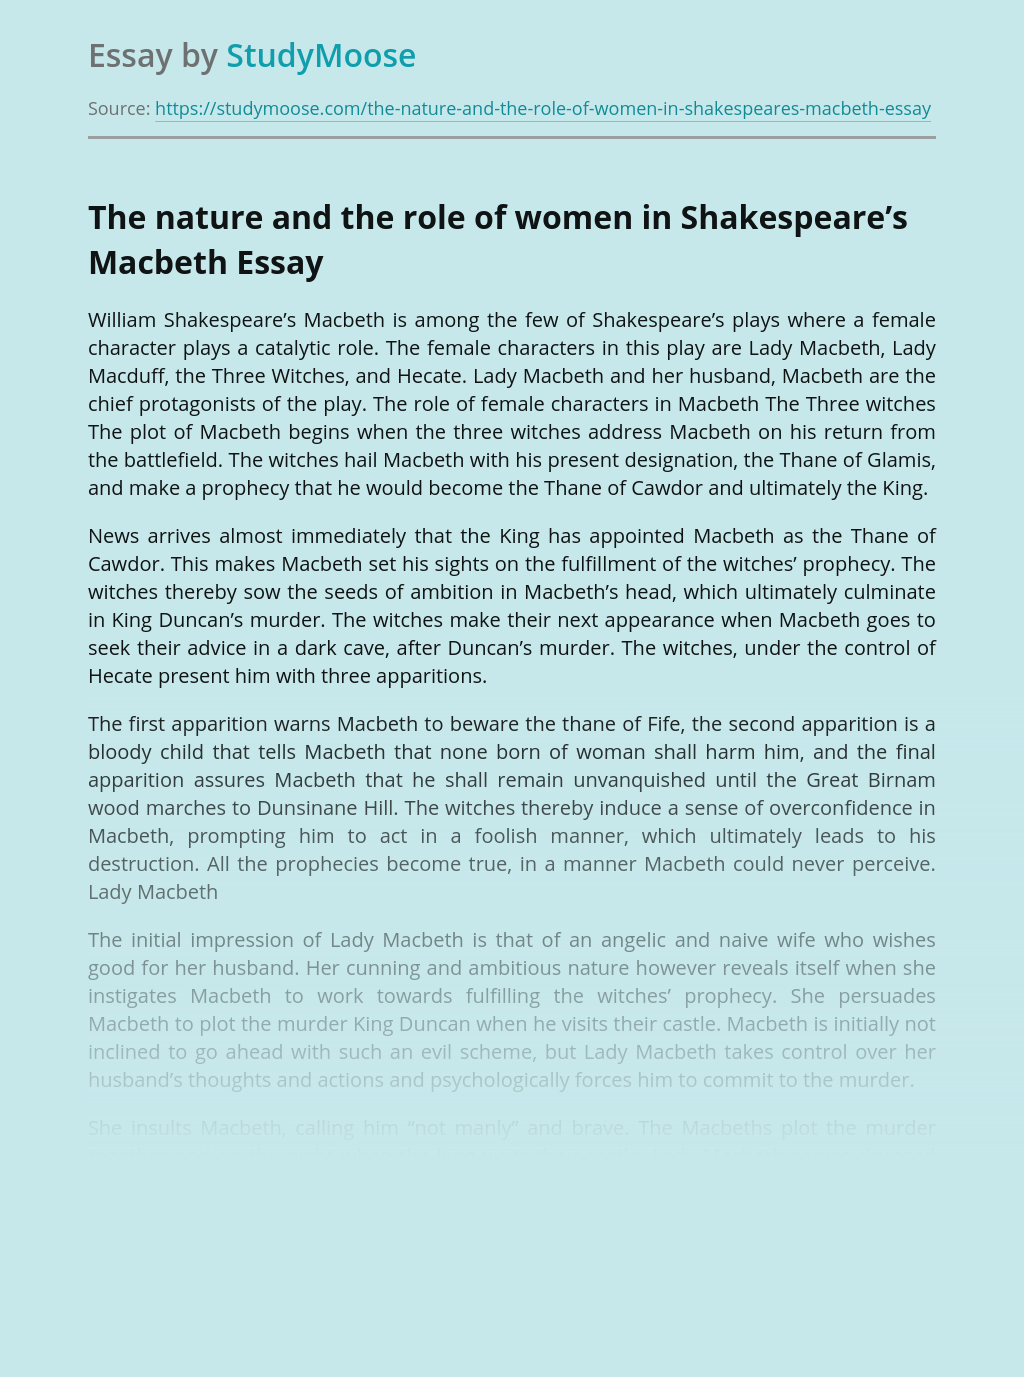 The nature and the role of women in Shakespeare's Macbeth